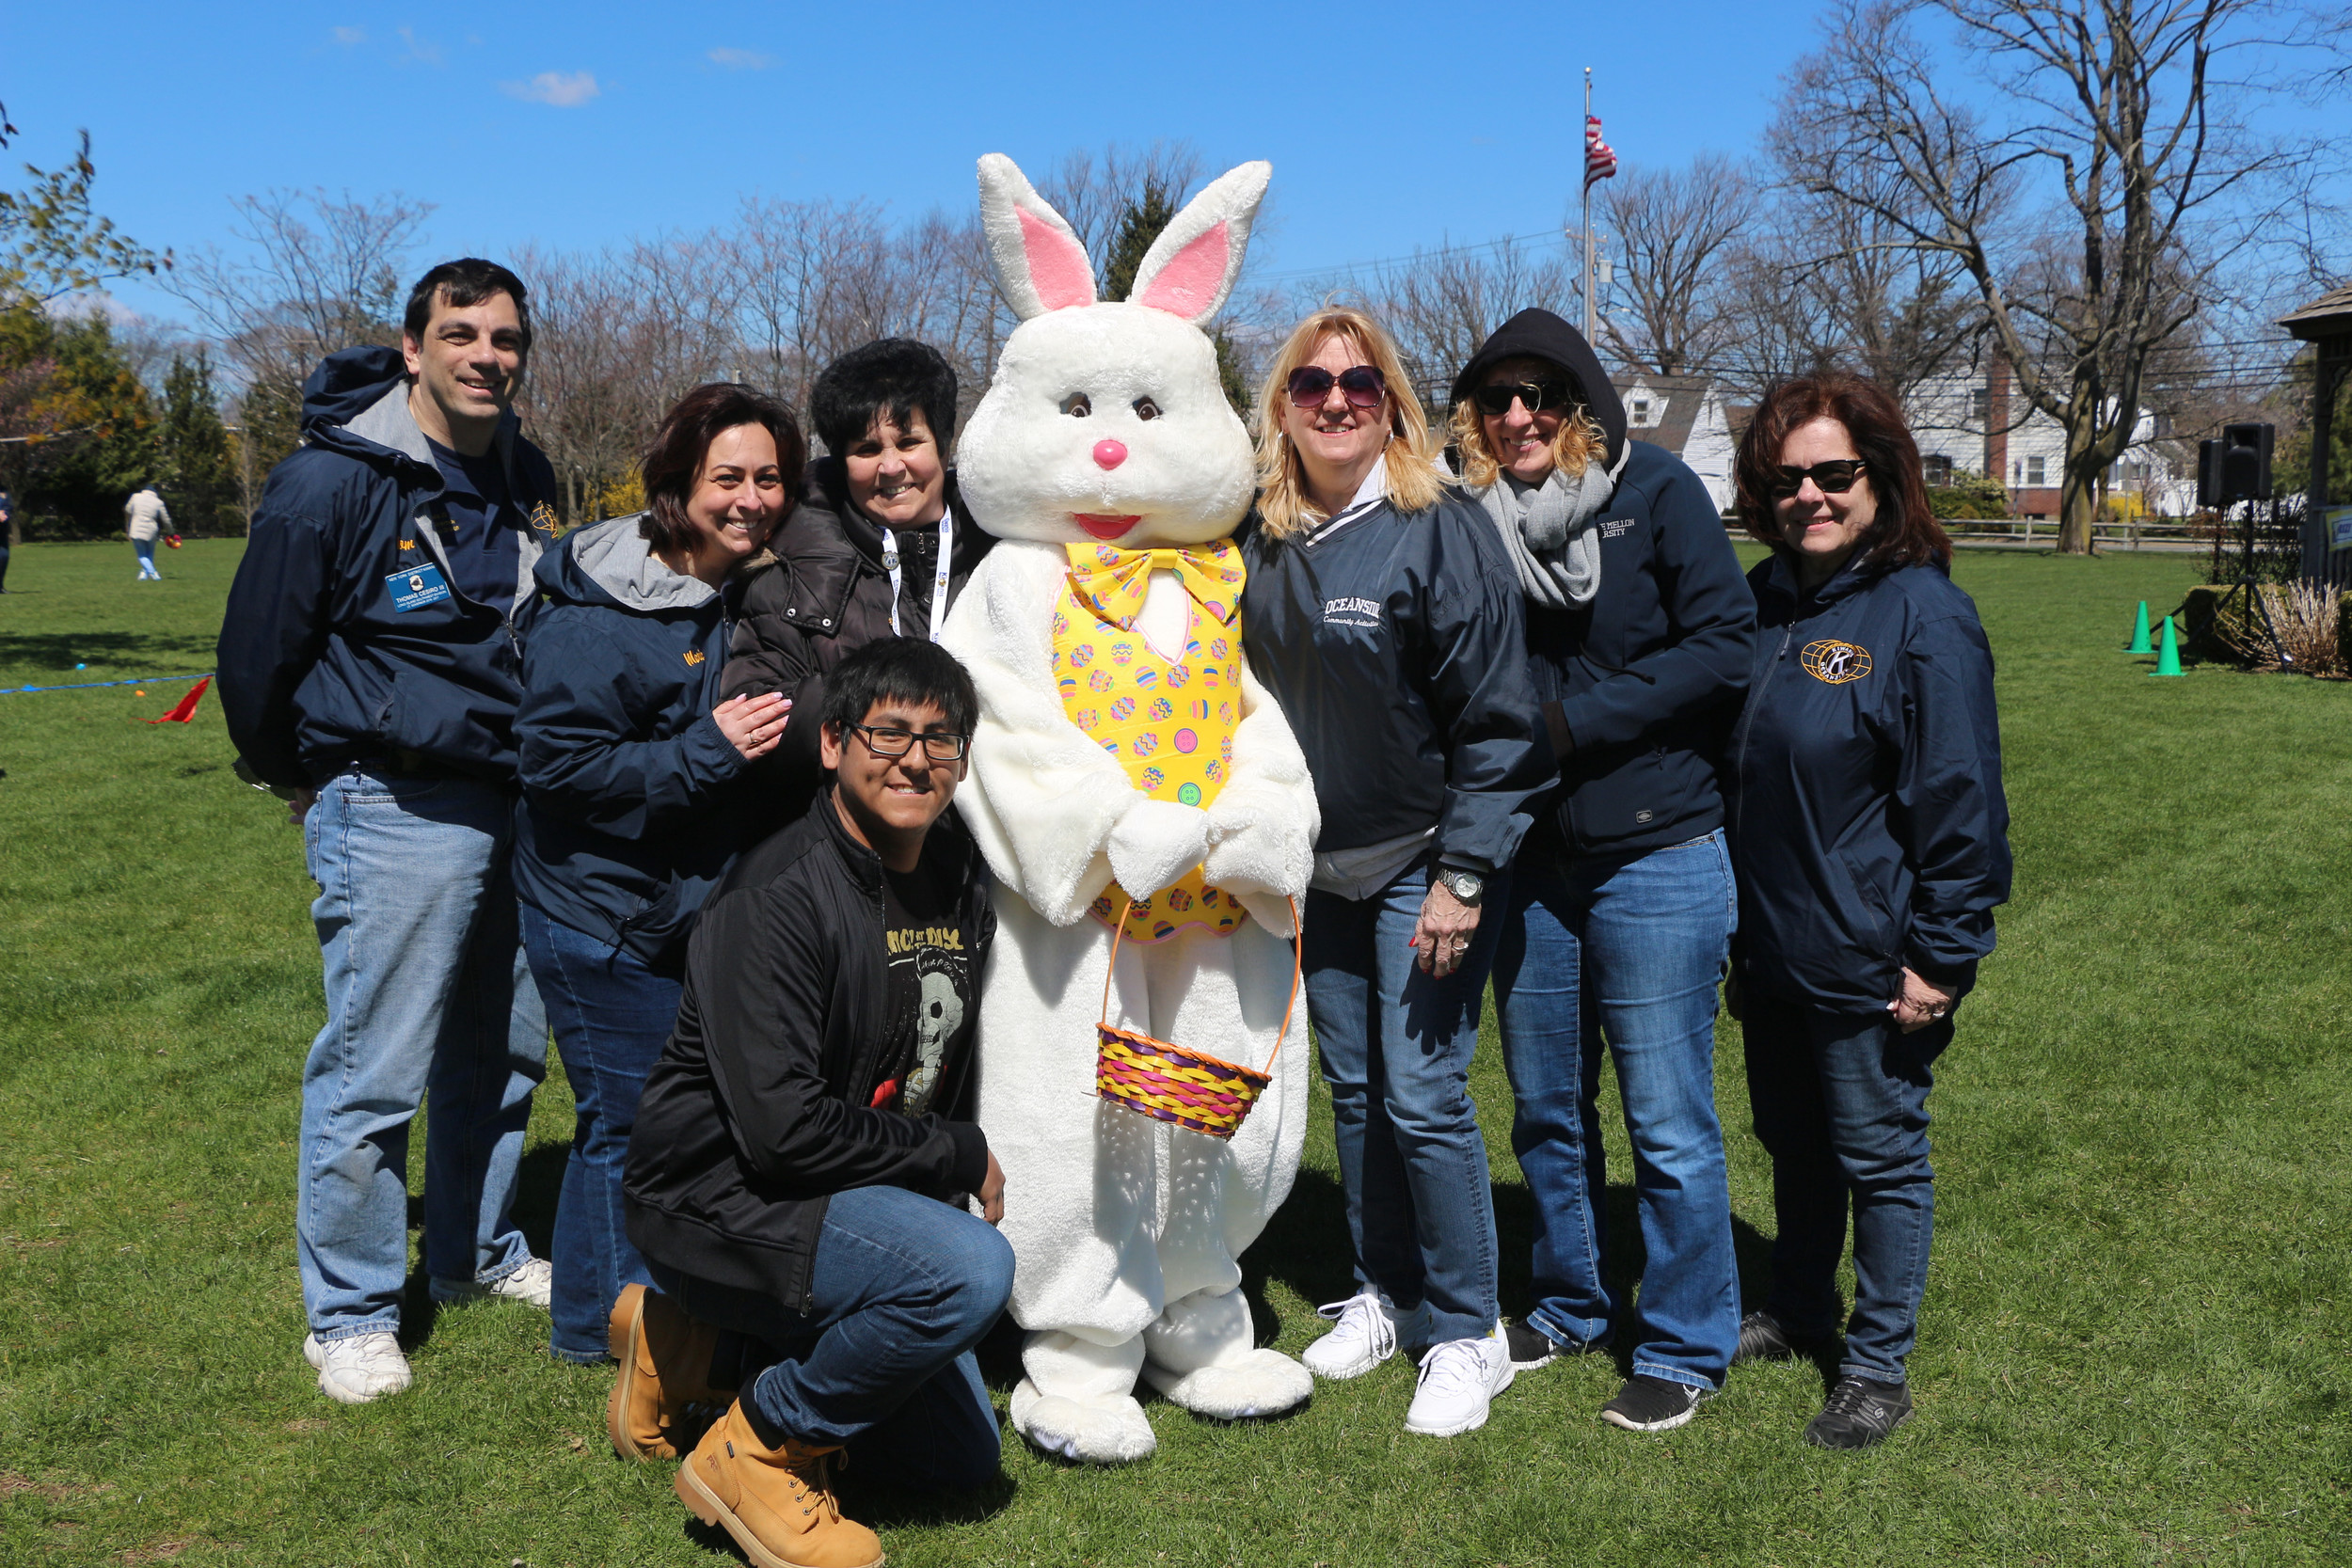 Maureen Lennon/Herald